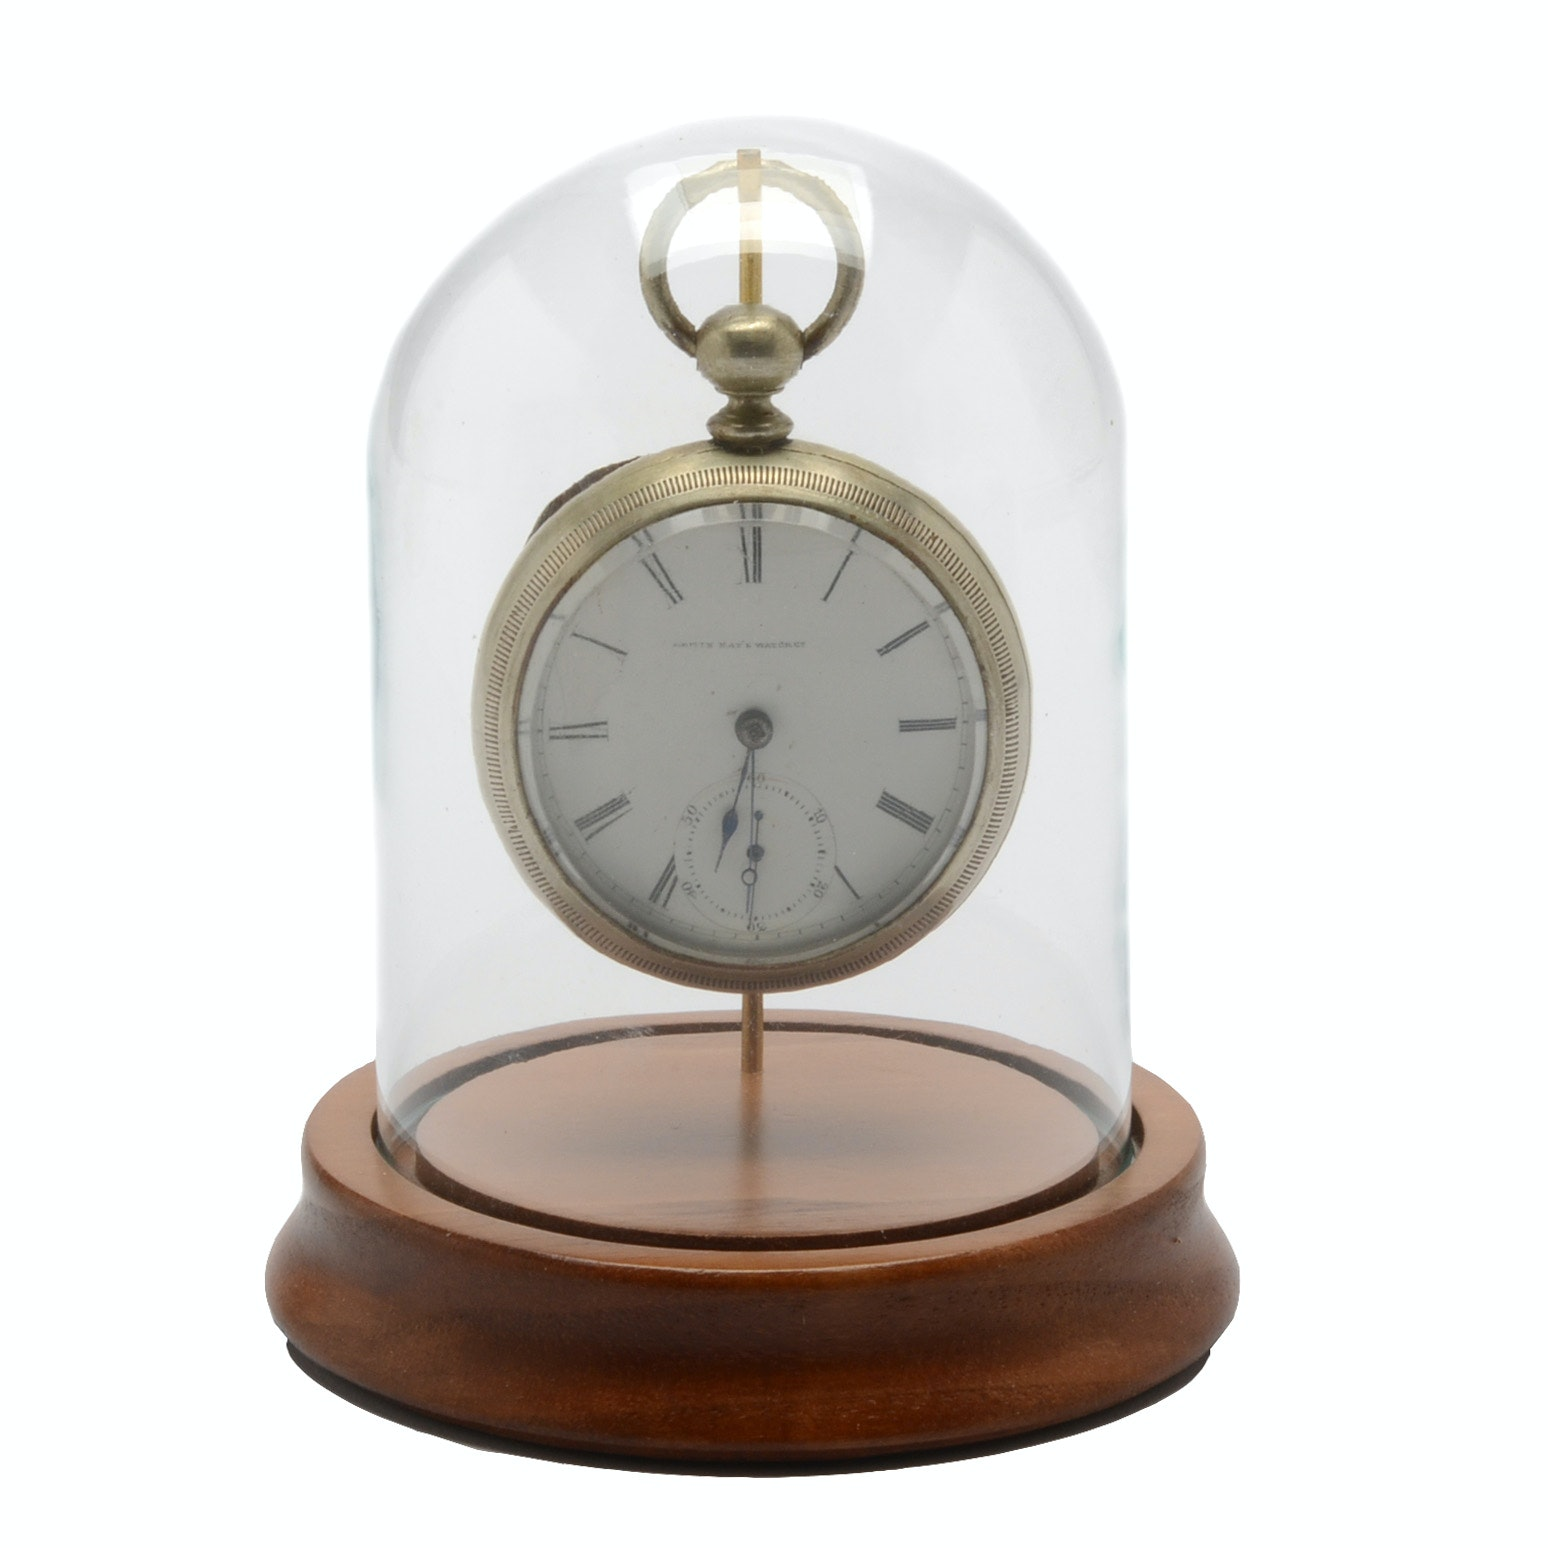 Elgin Open Face Pocket Watch and Domed Display Stand